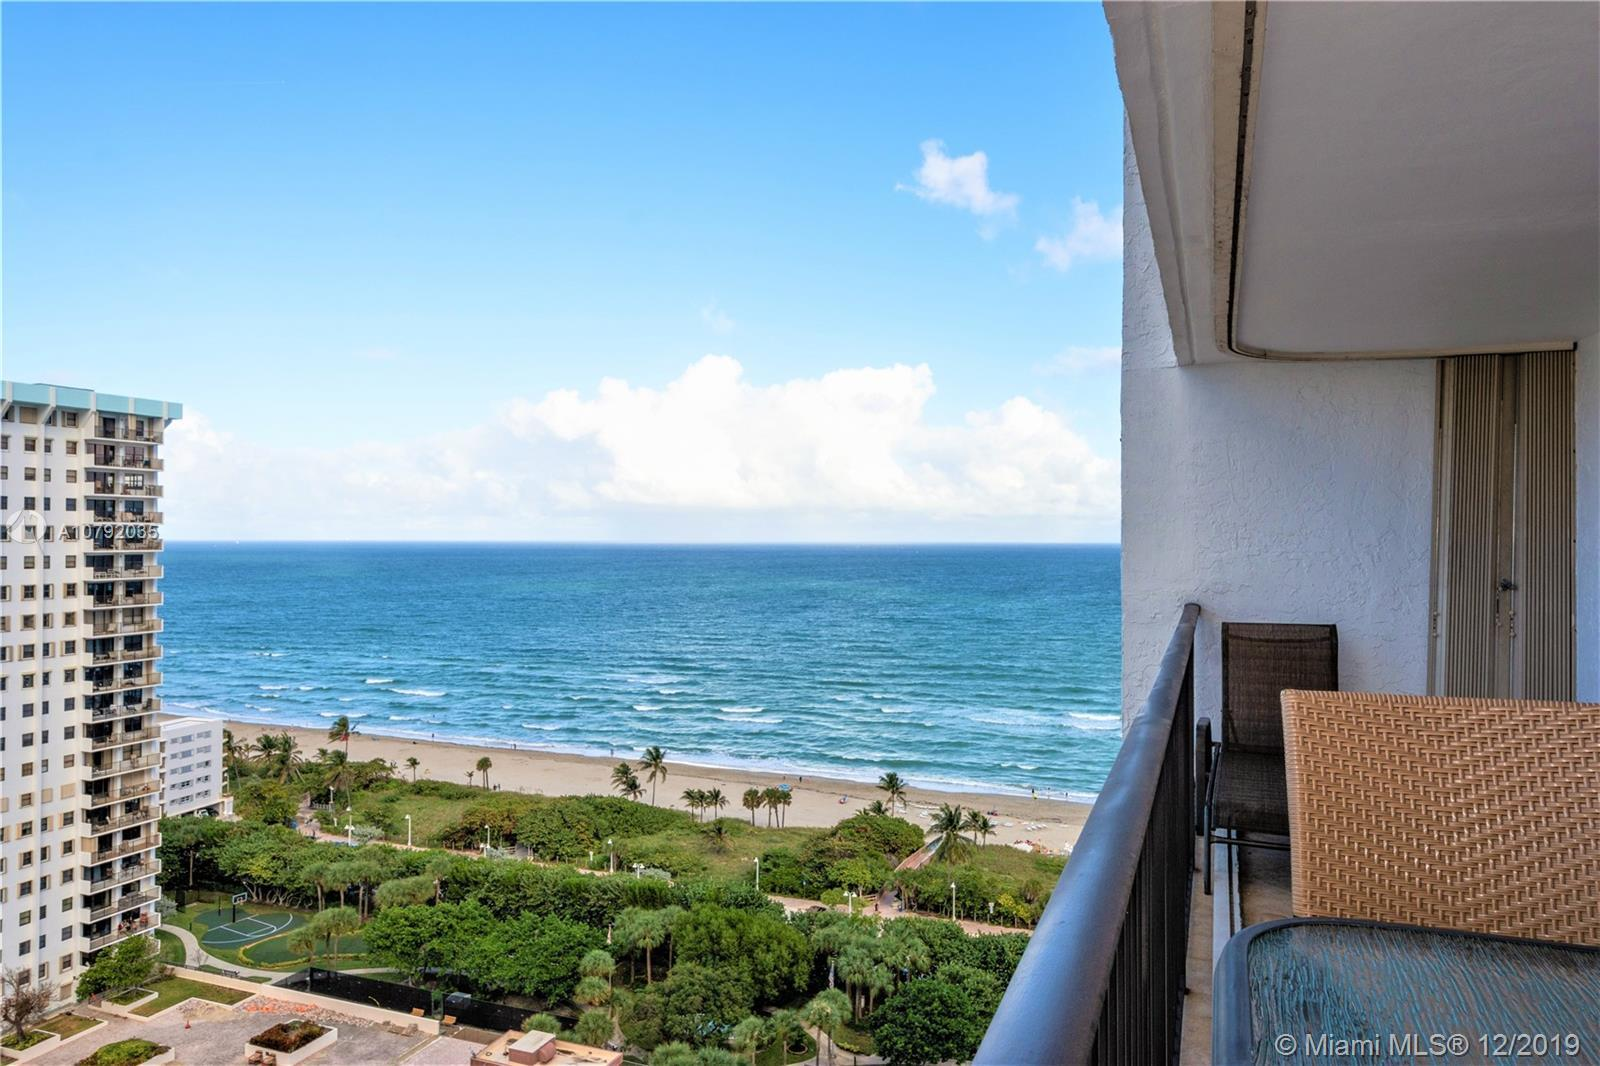 PRICELESS PANORAMIC VIEWS OF THE BLUE ATLANTIC COASTLINE AND THE INTRACOASTAL WATERWAYS ALL FROM THE